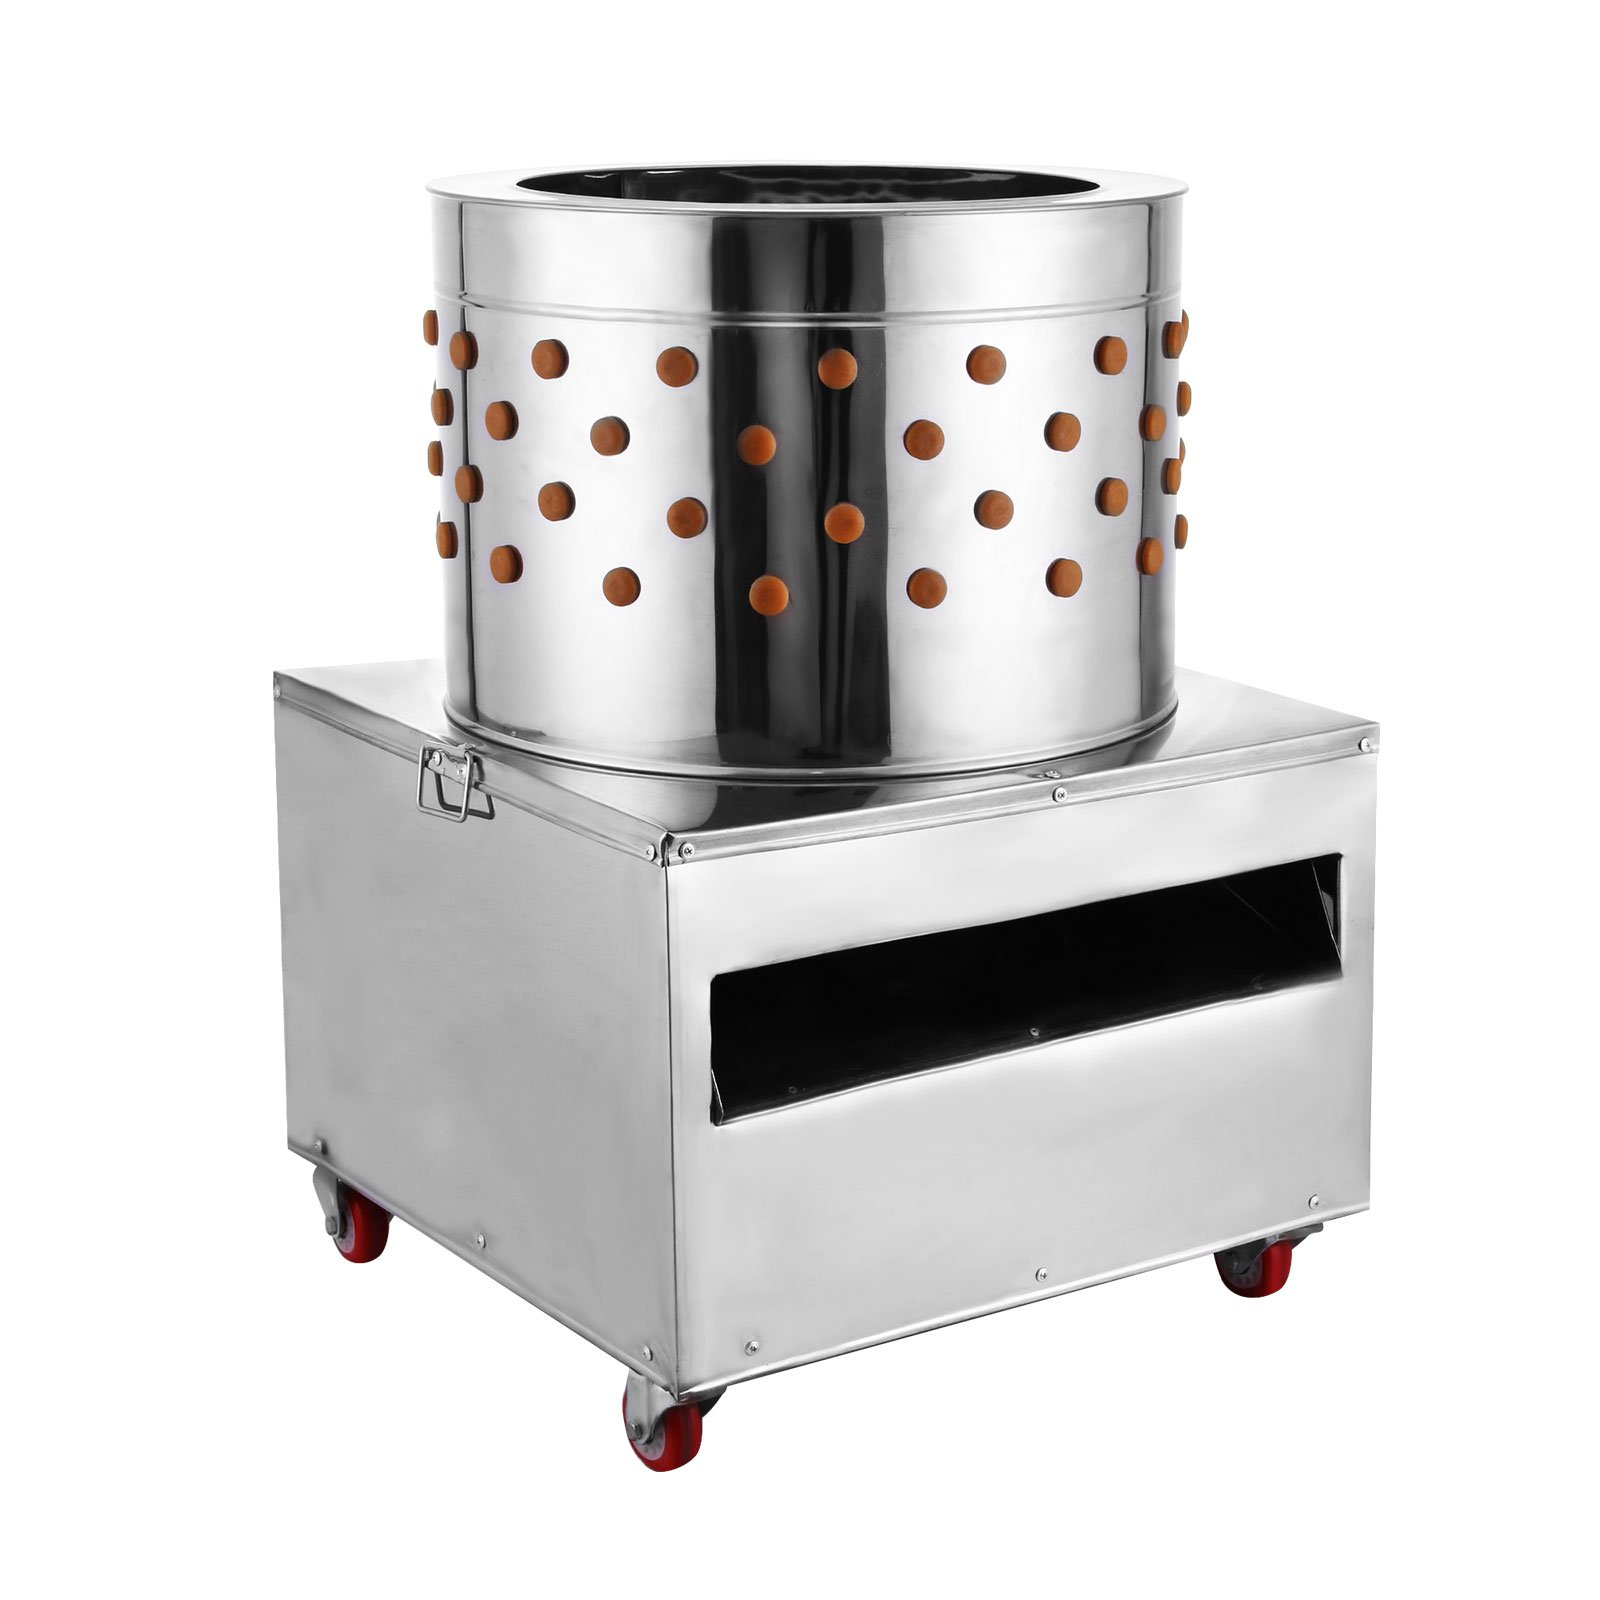 BestEquip Chicken Plucker Machine 2200W Large Pro Poultry Plucker 23.5Inch Barrel Diameter Feather Removal Quail Plucker for Quail and Chicken by BestEquip